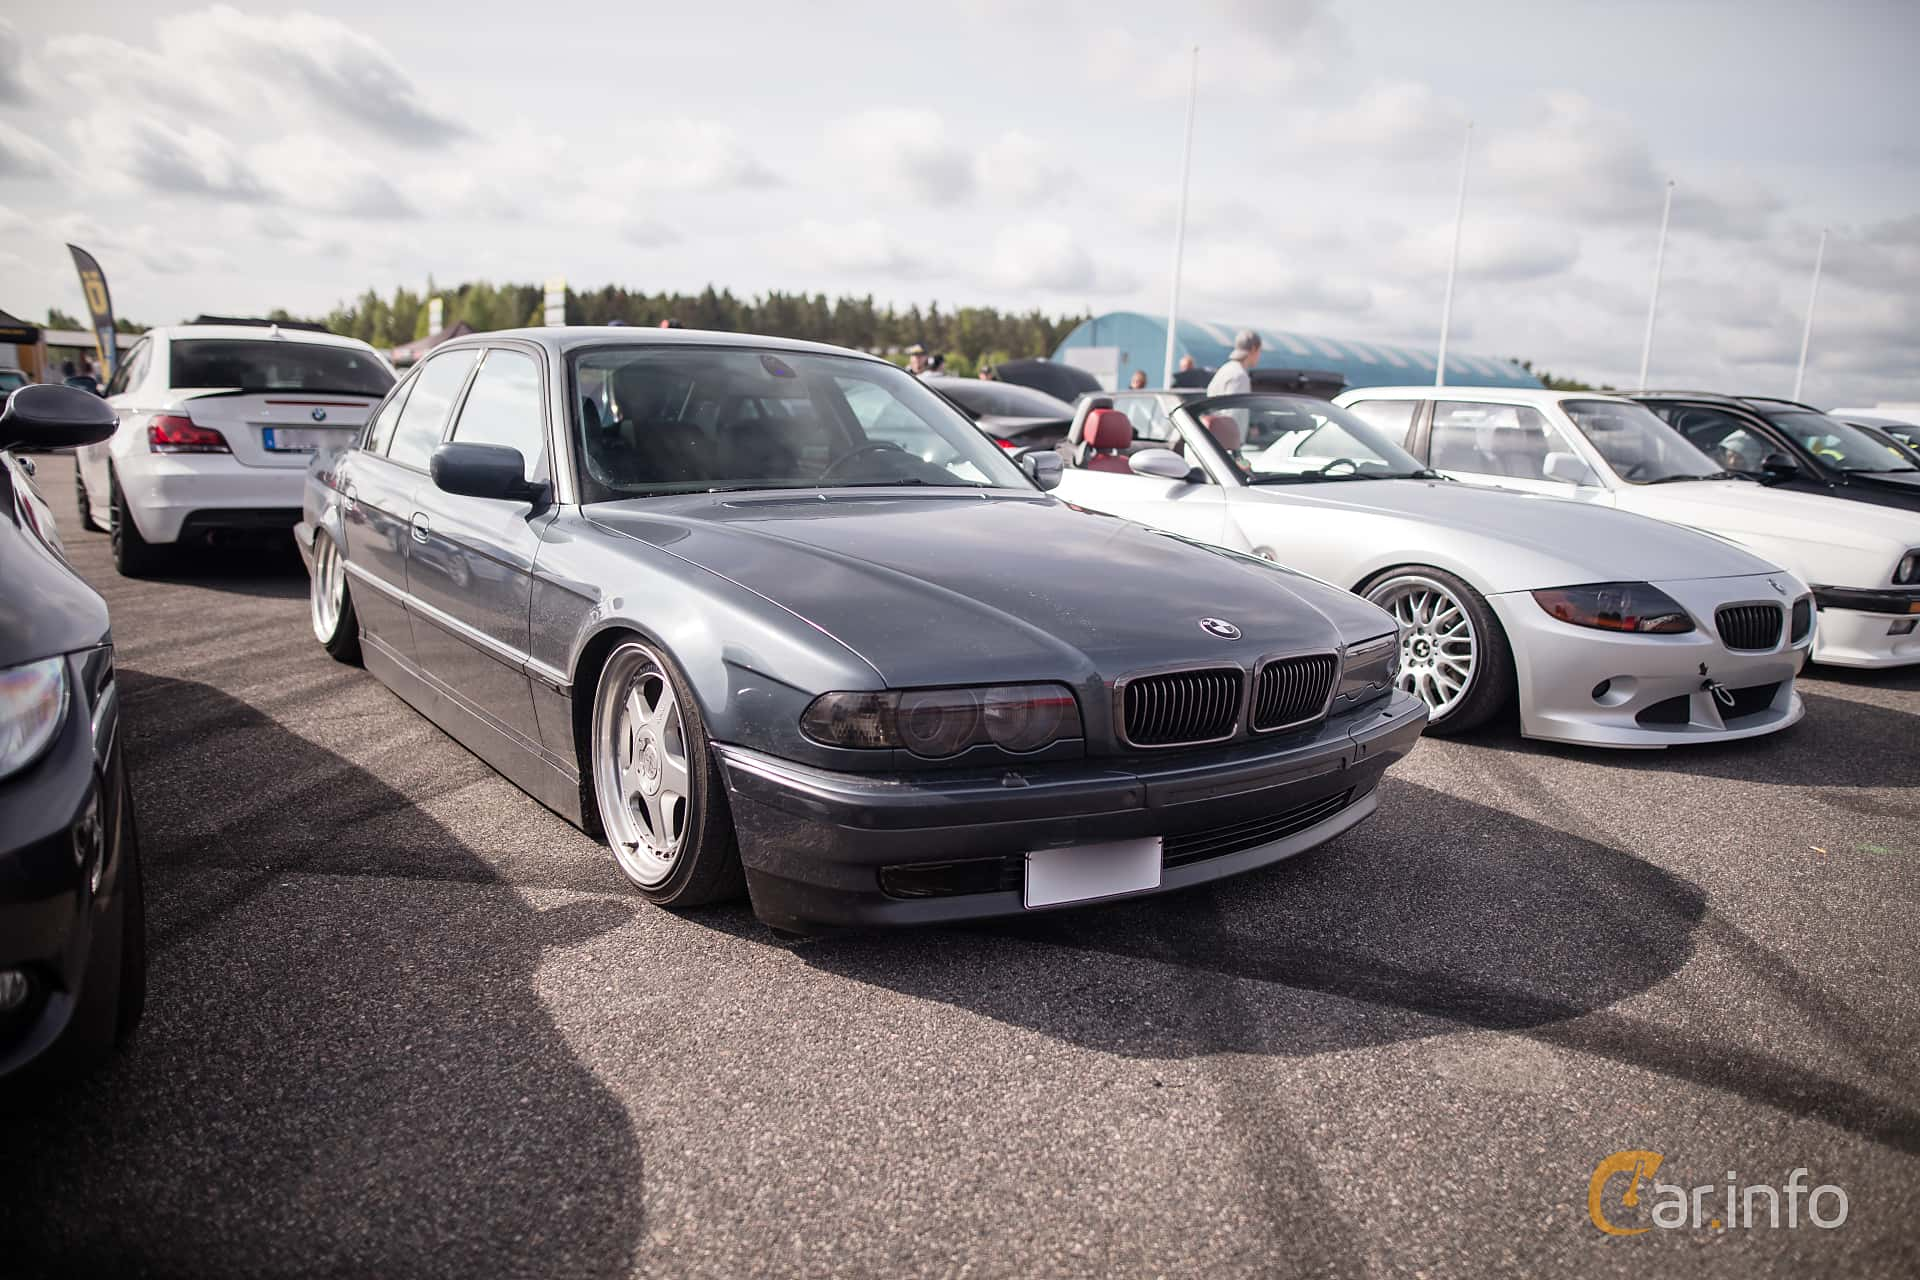 BMW 740i  Automatic, 286hp, 1999 at Bimmers of Sweden @ Mantorp 2016